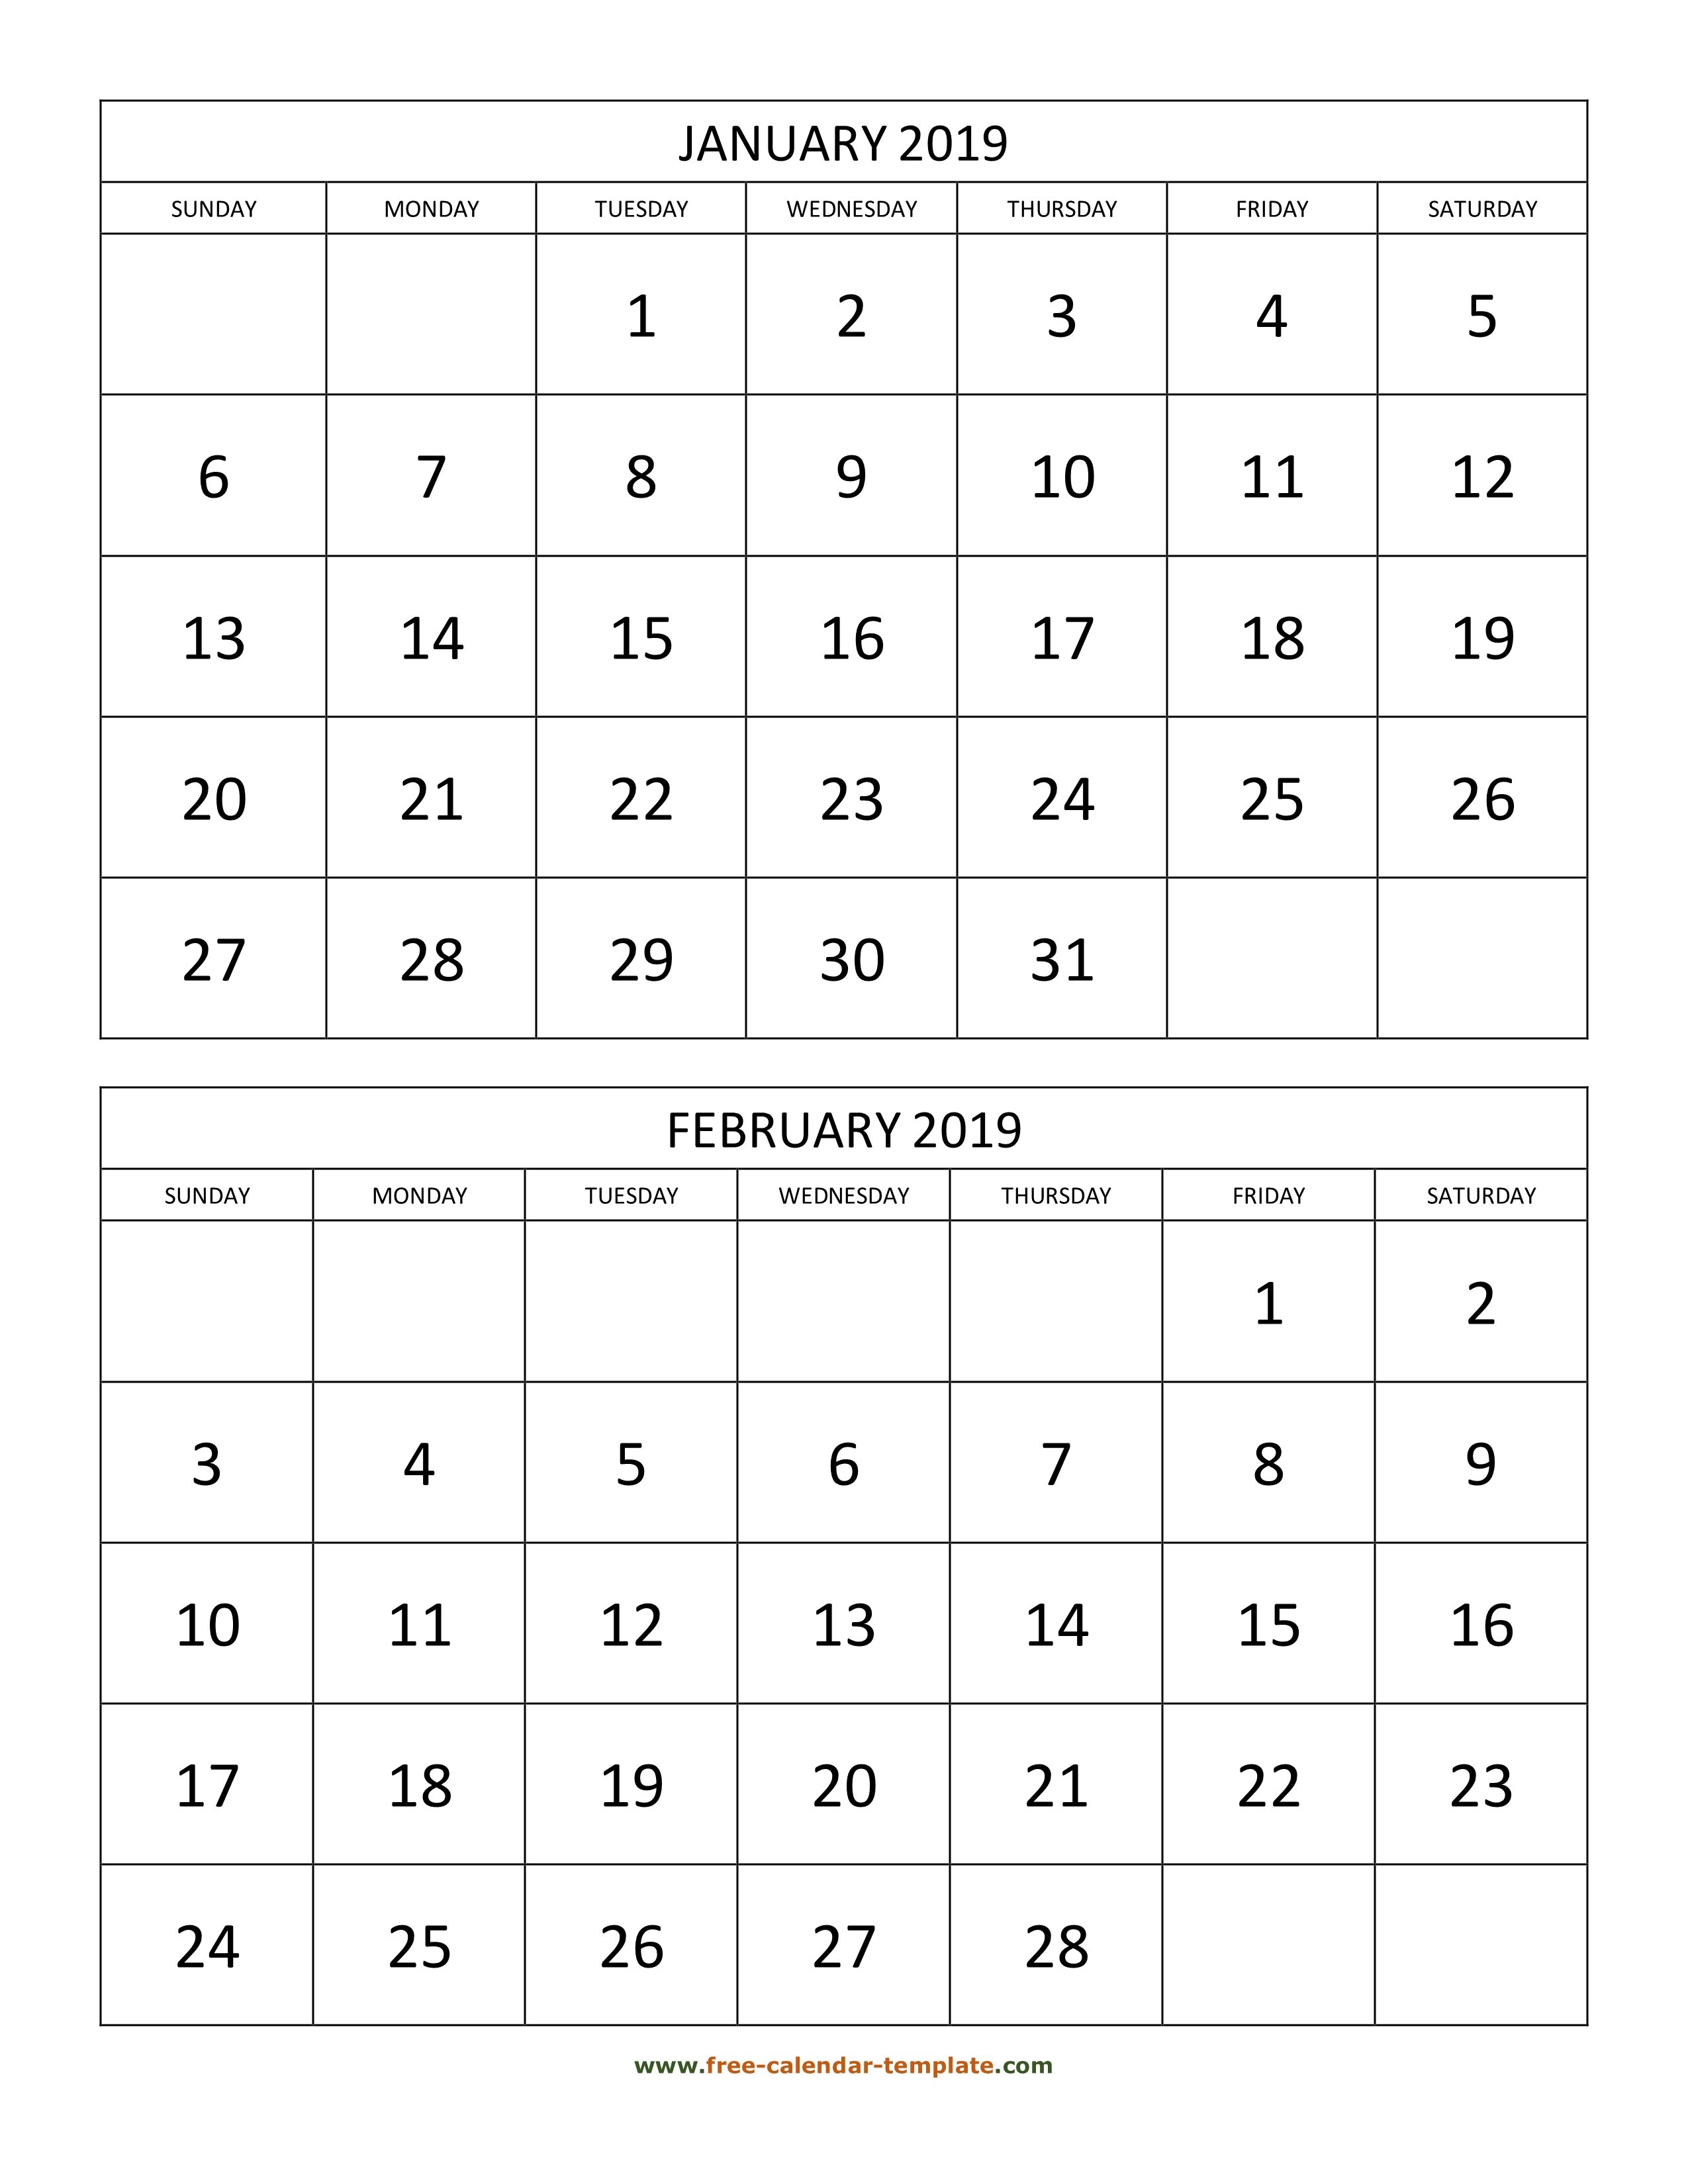 Monthly Calendar 2019, 2 Months Per Page (Vertical) | Free-Calendar Calendar 2019 2 Months Per Page